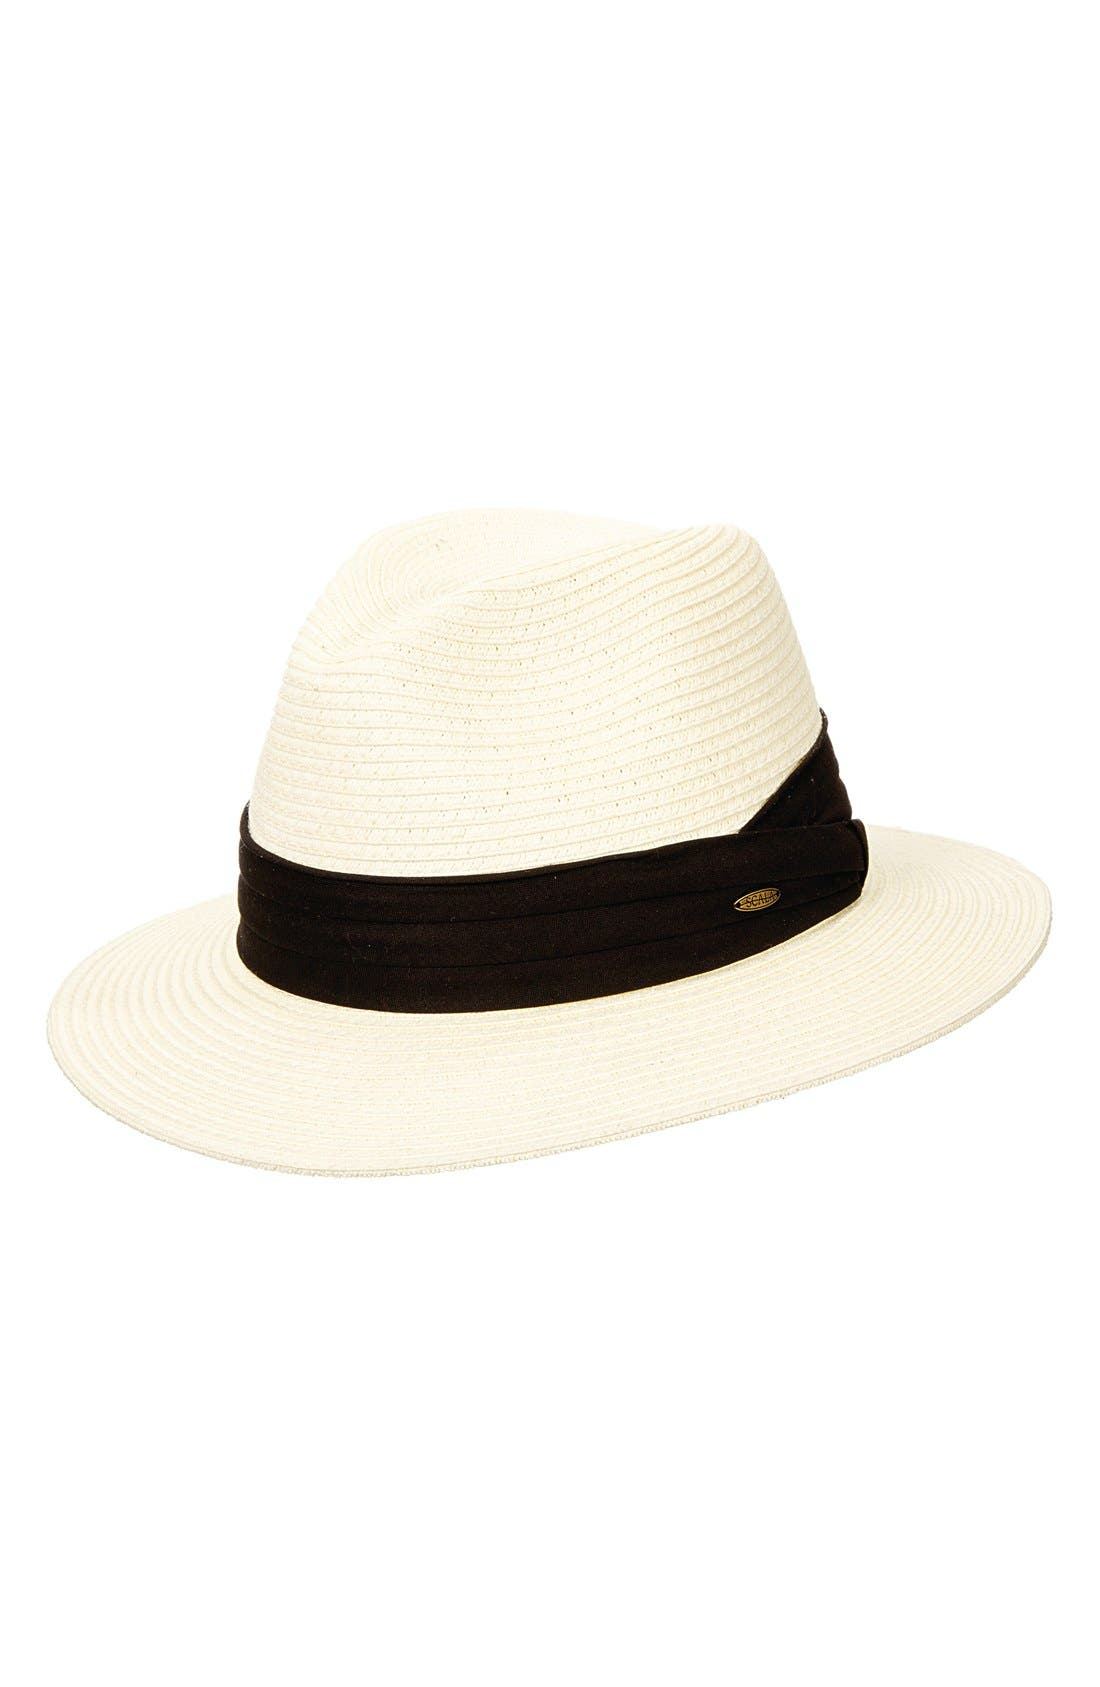 Safari Hat,                         Main,                         color, IVORY